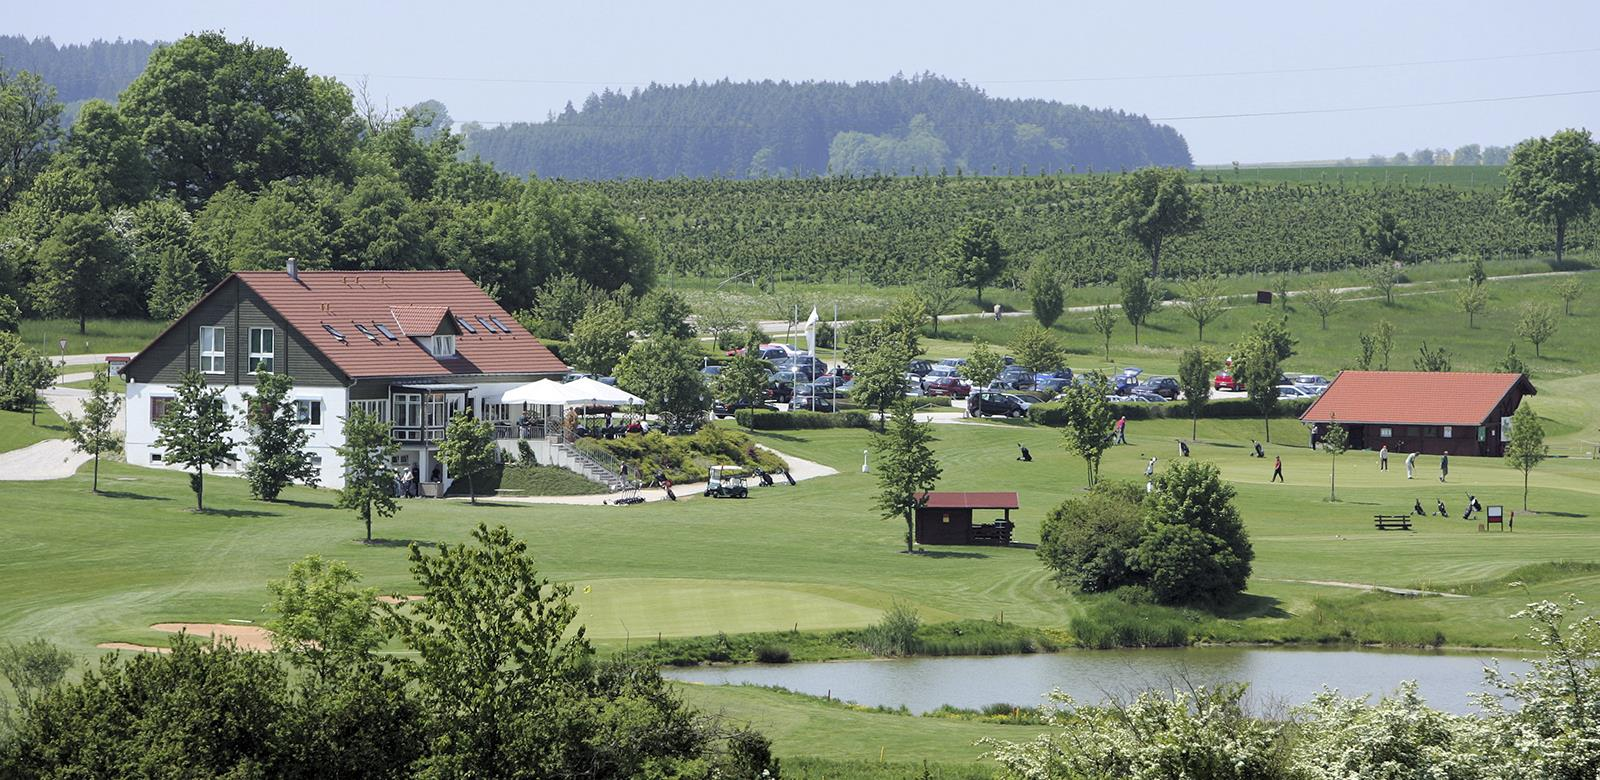 Overview of golf course named Rottbach Golf Course